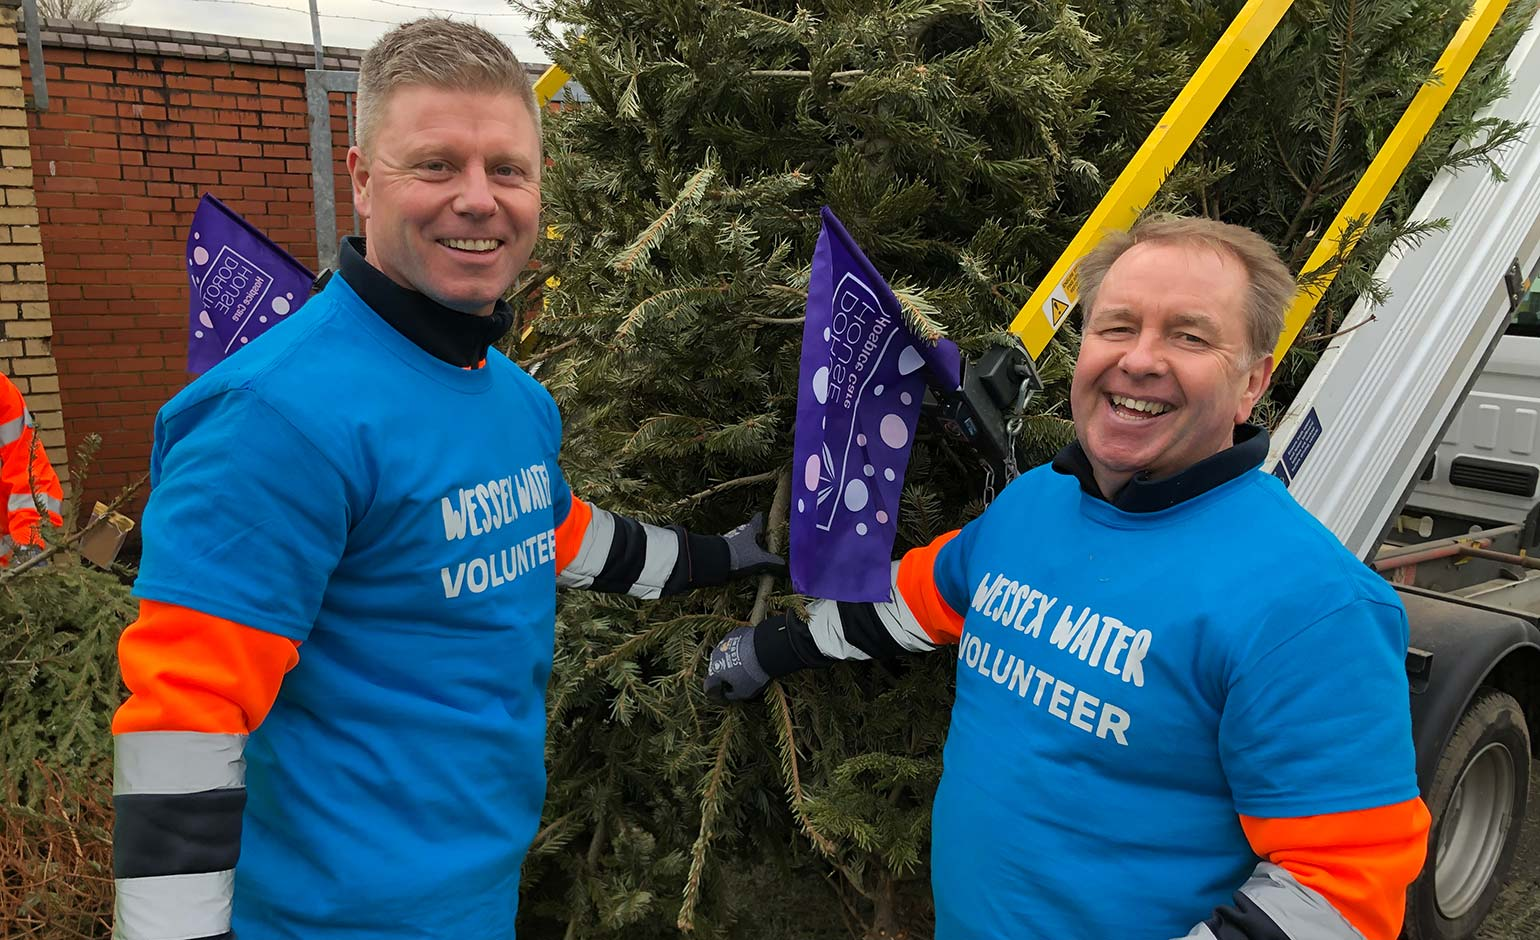 Charitable Christmas tree collection campaign raises £40k for Dorothy House